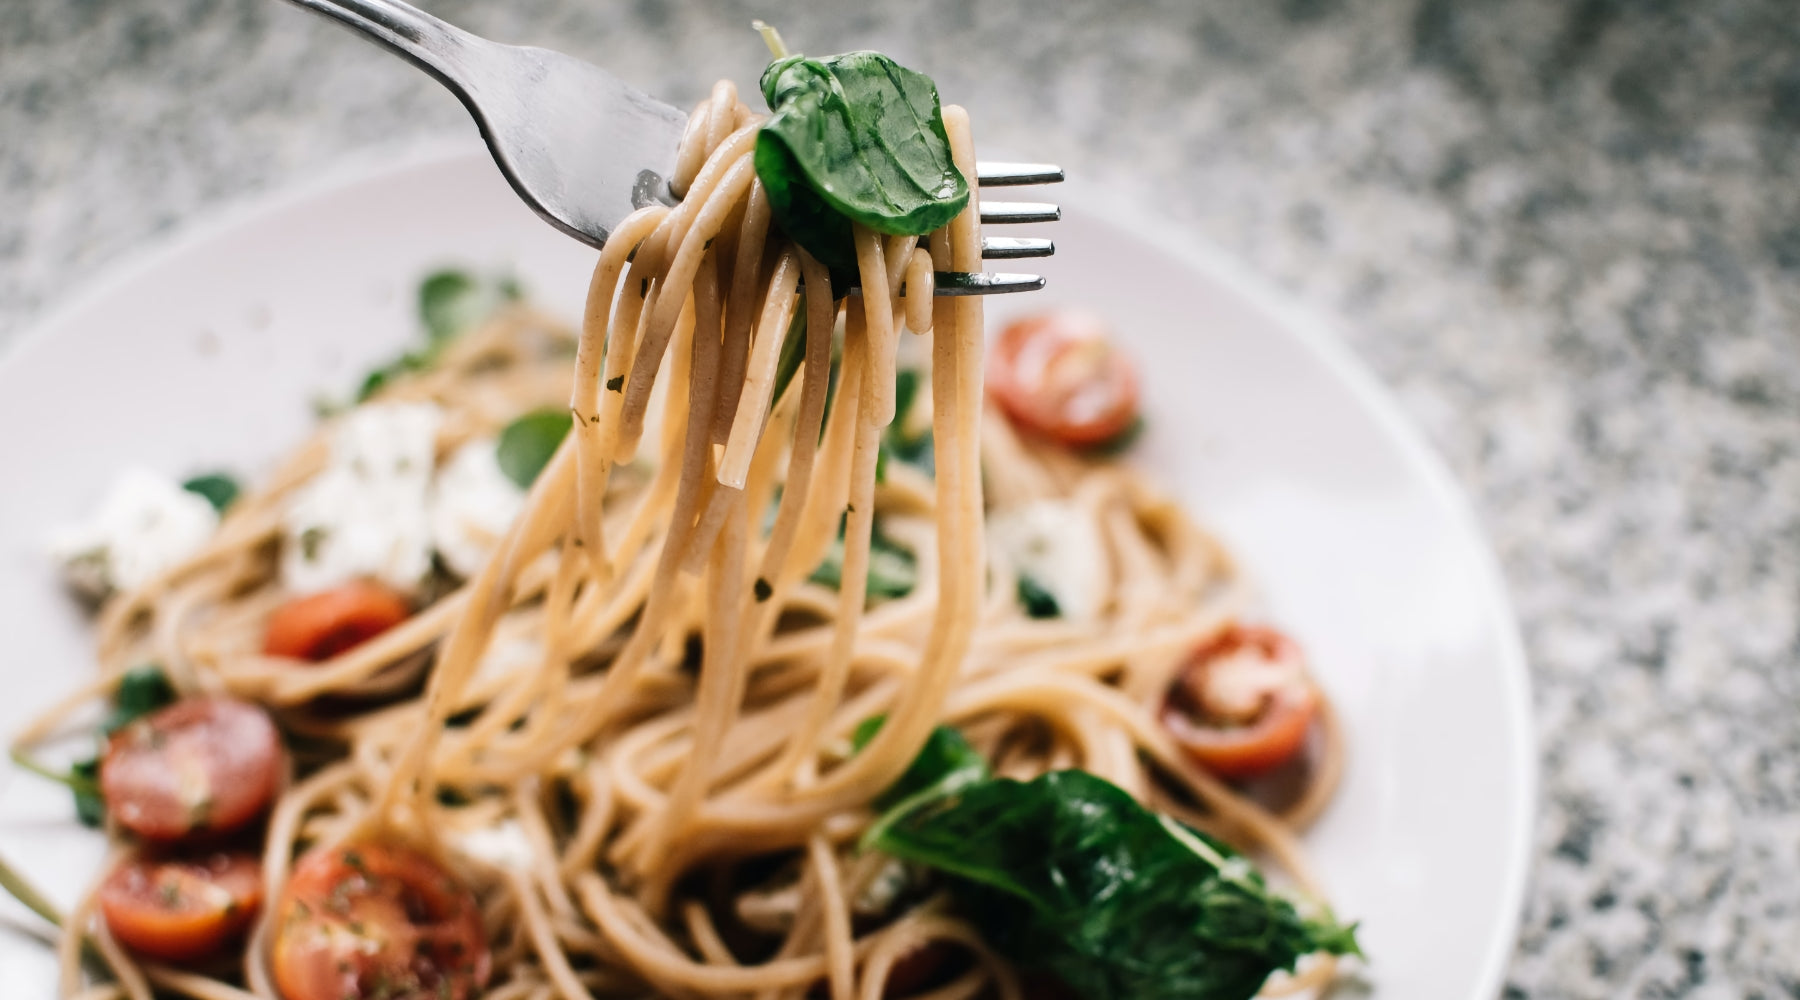 Is Pasta Healthy? Here's What You Should Know